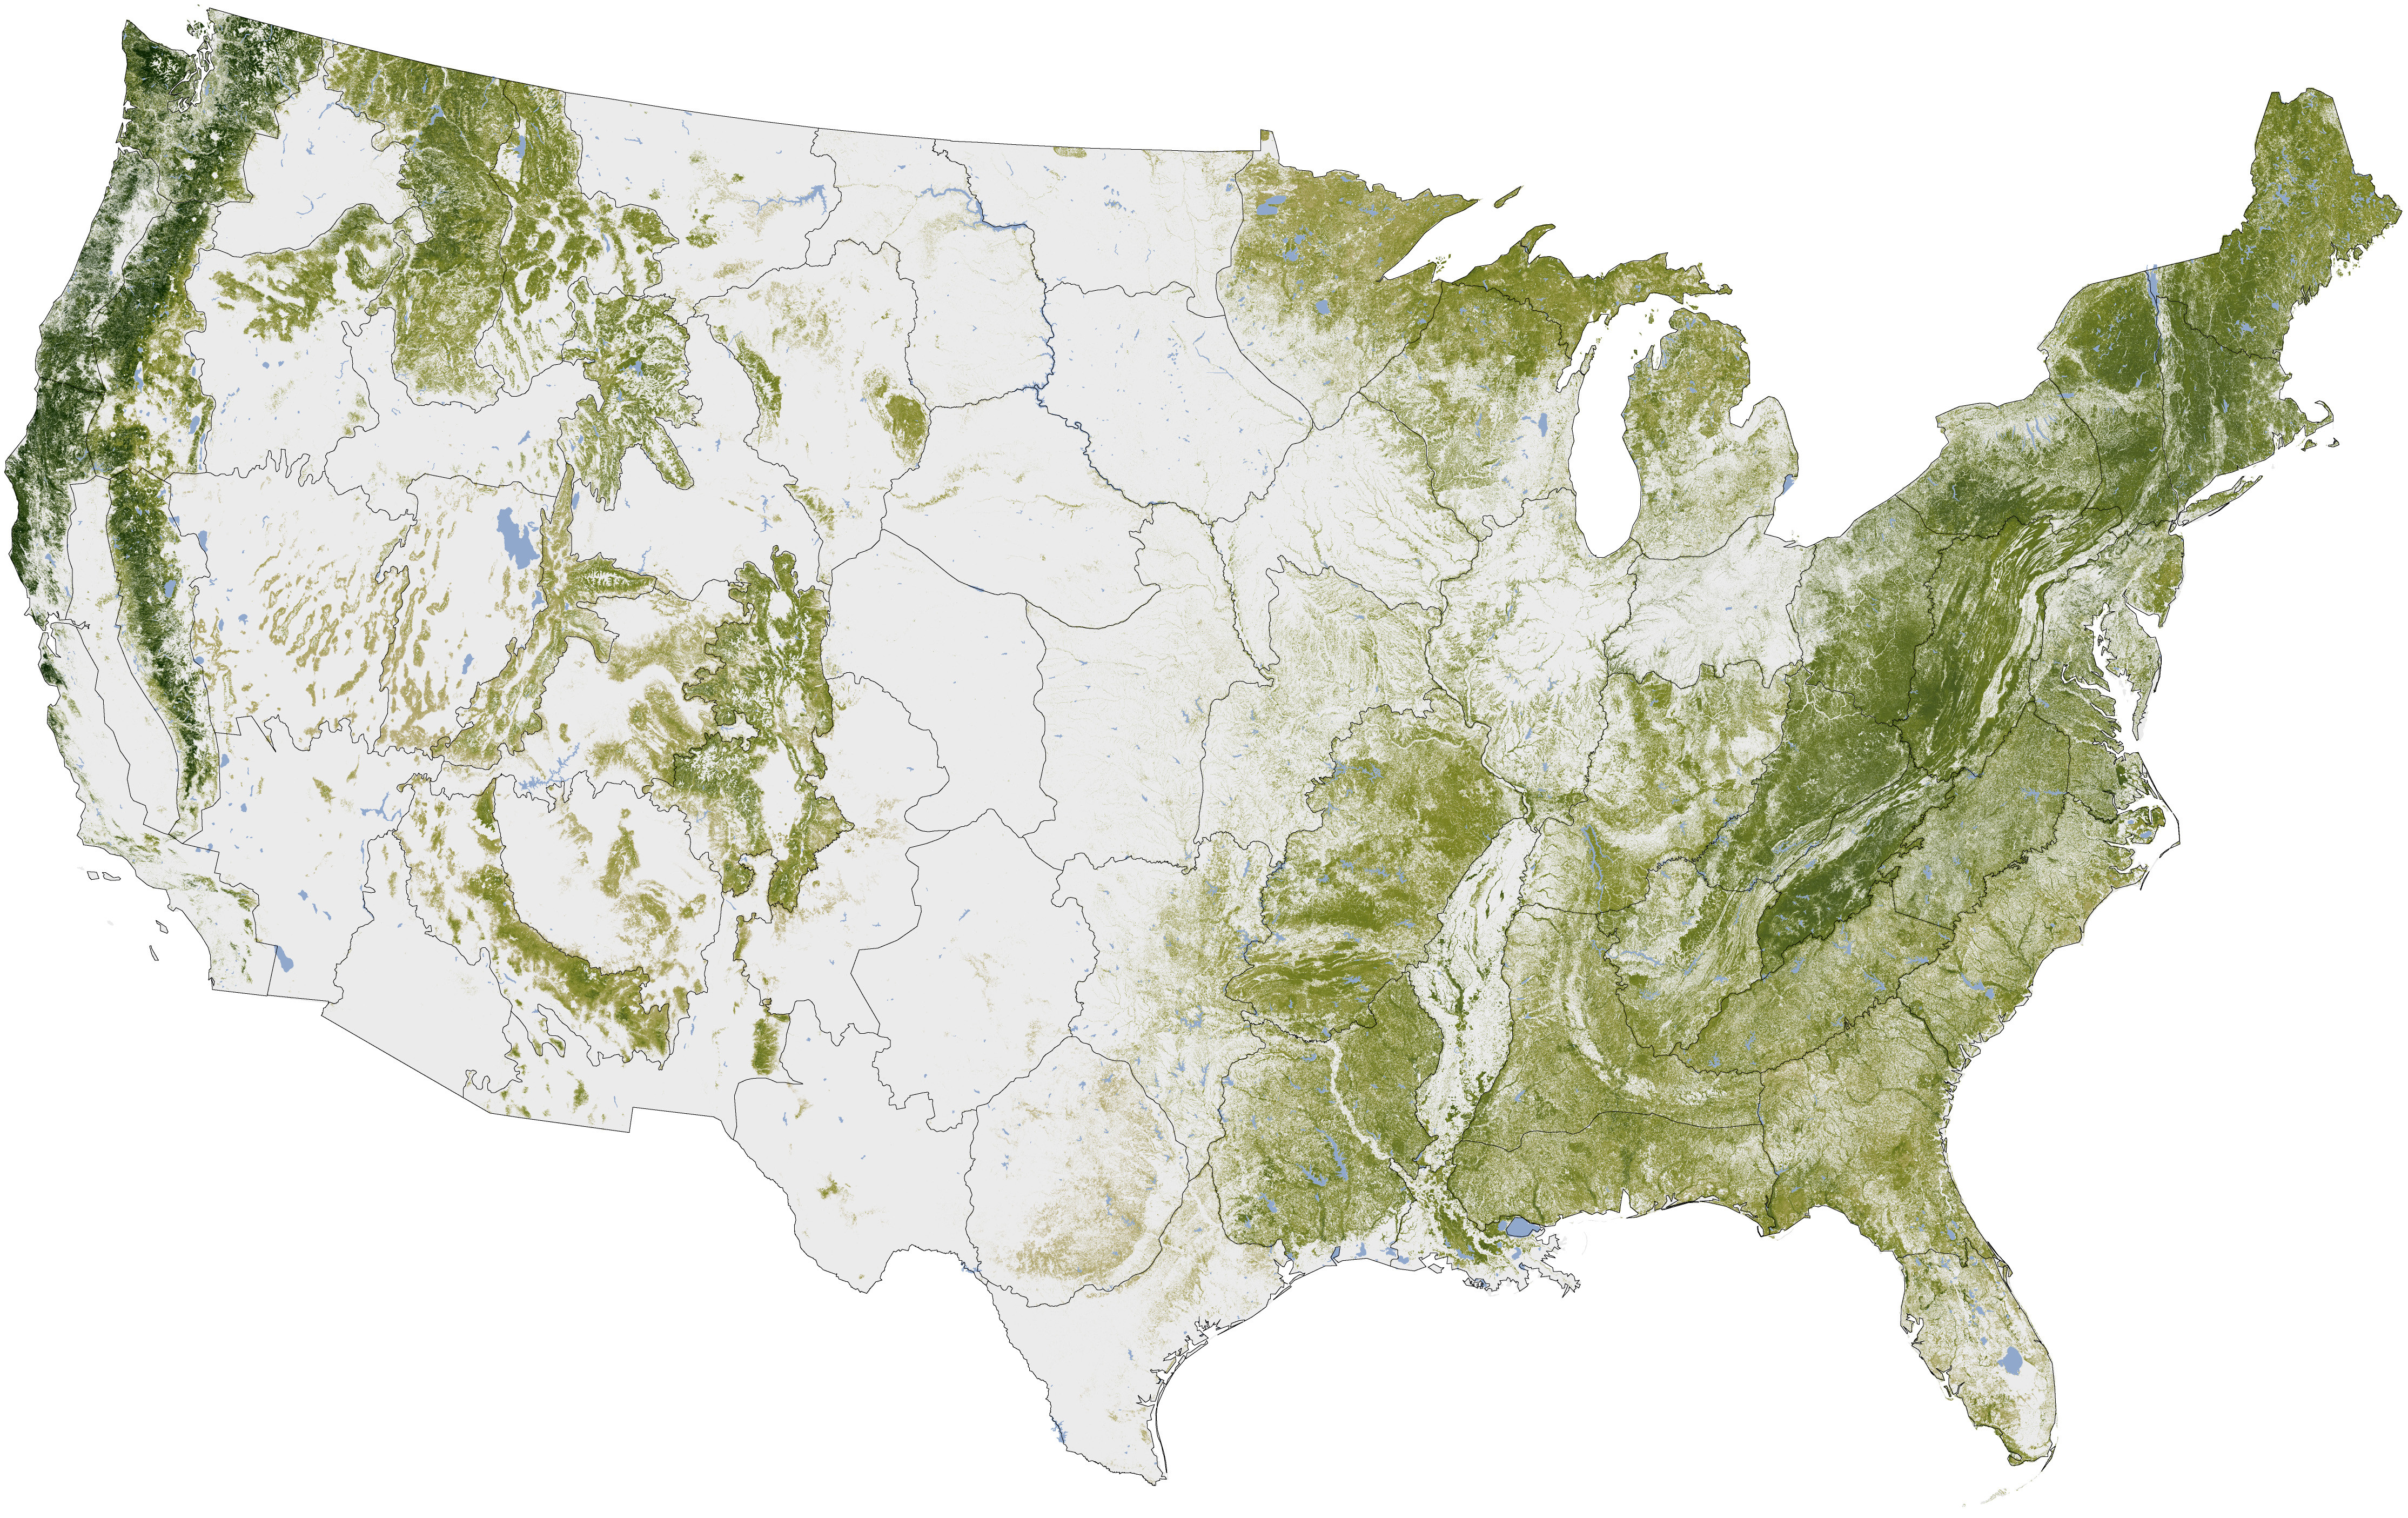 NASA Shows That U.S. Green Tree Coverage Is Less Than Ideal